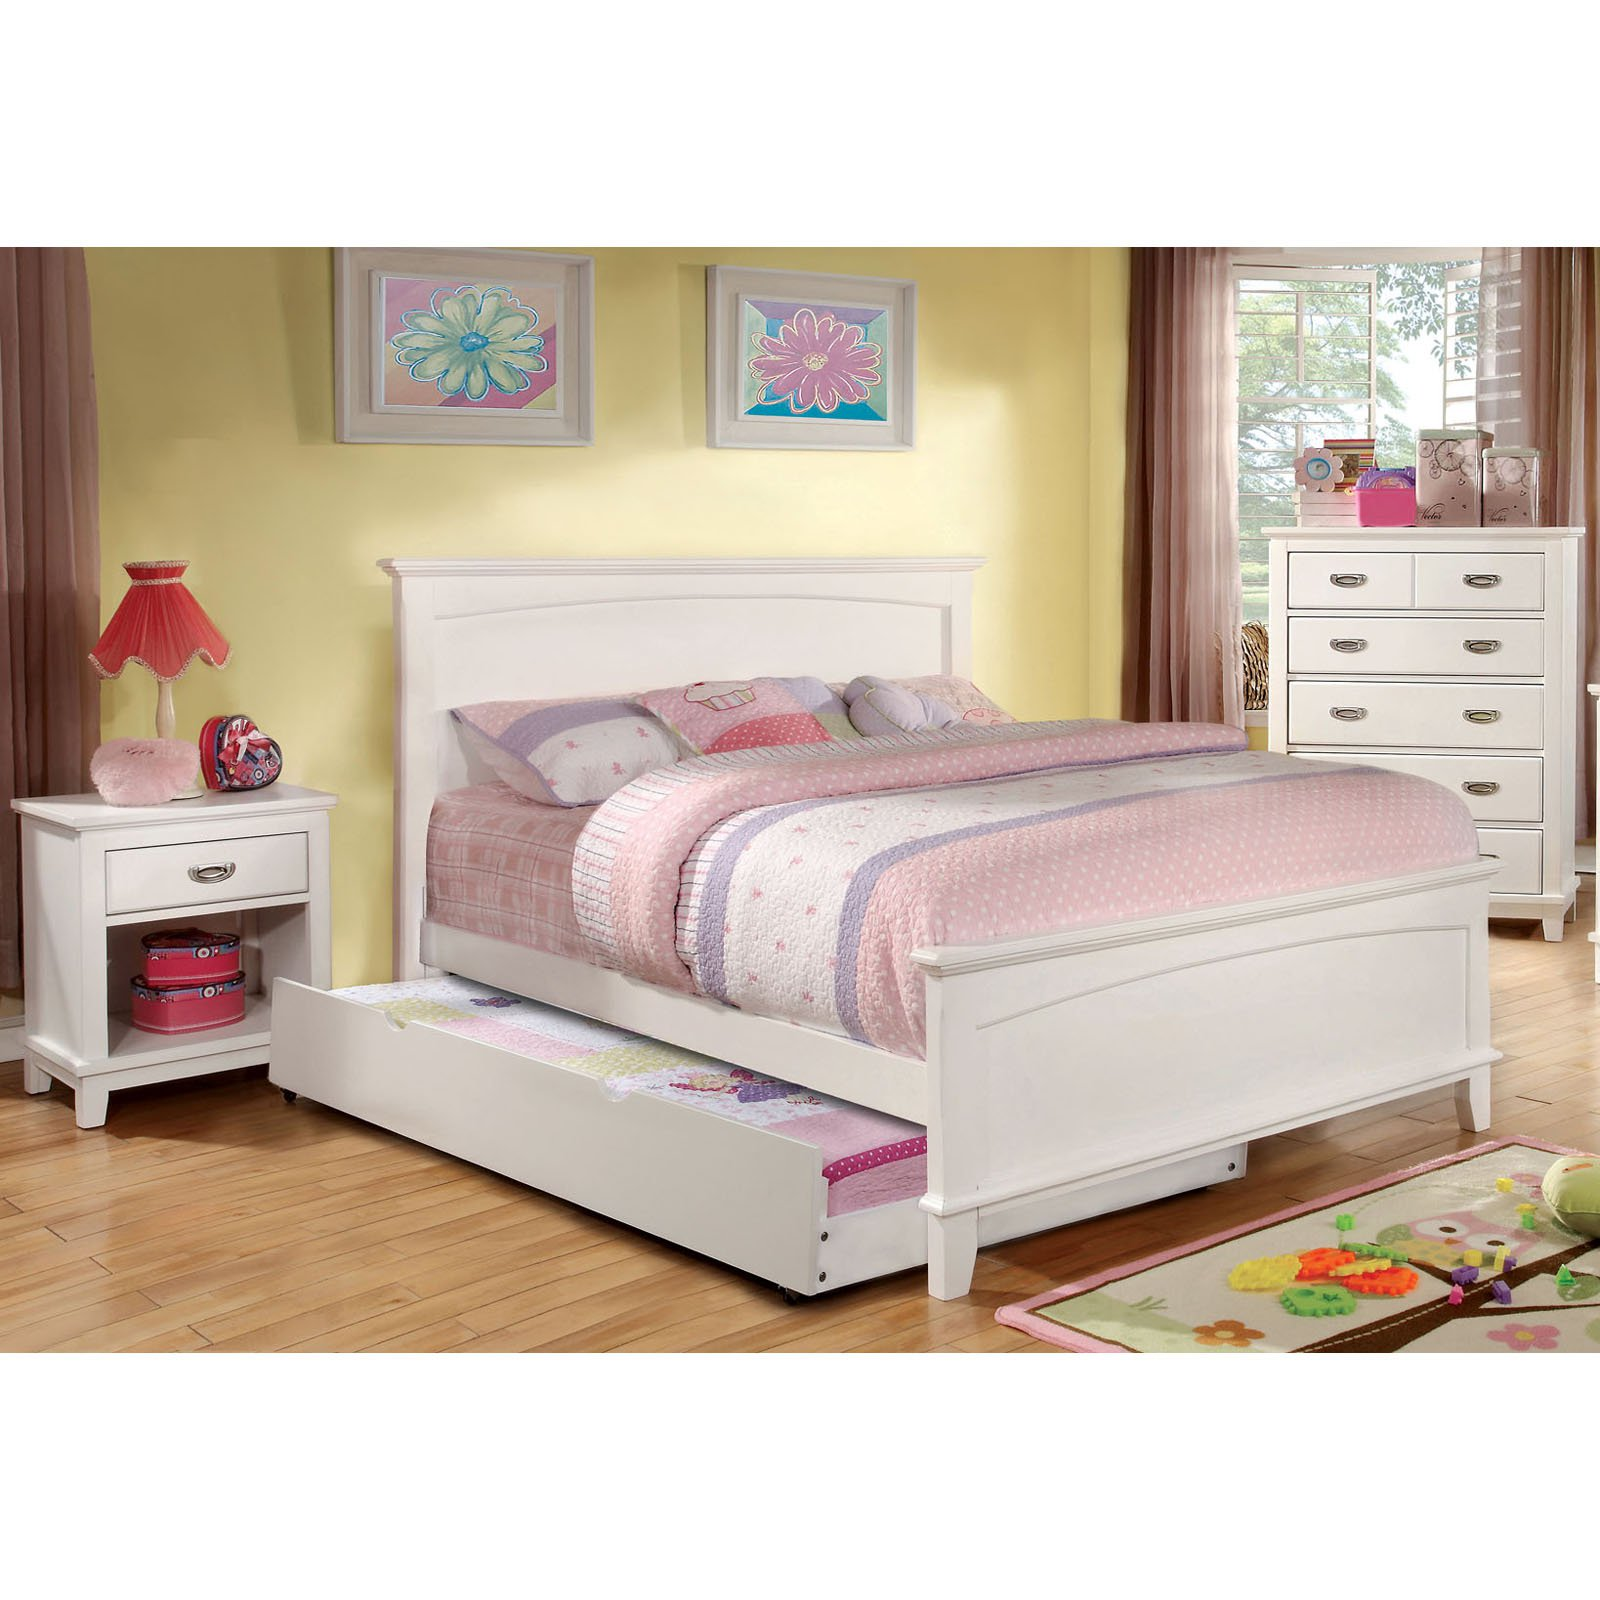 Furniture of America Alana Marie Inspired 3-Piece Bedroom Collection with Chest and Nightstand - White